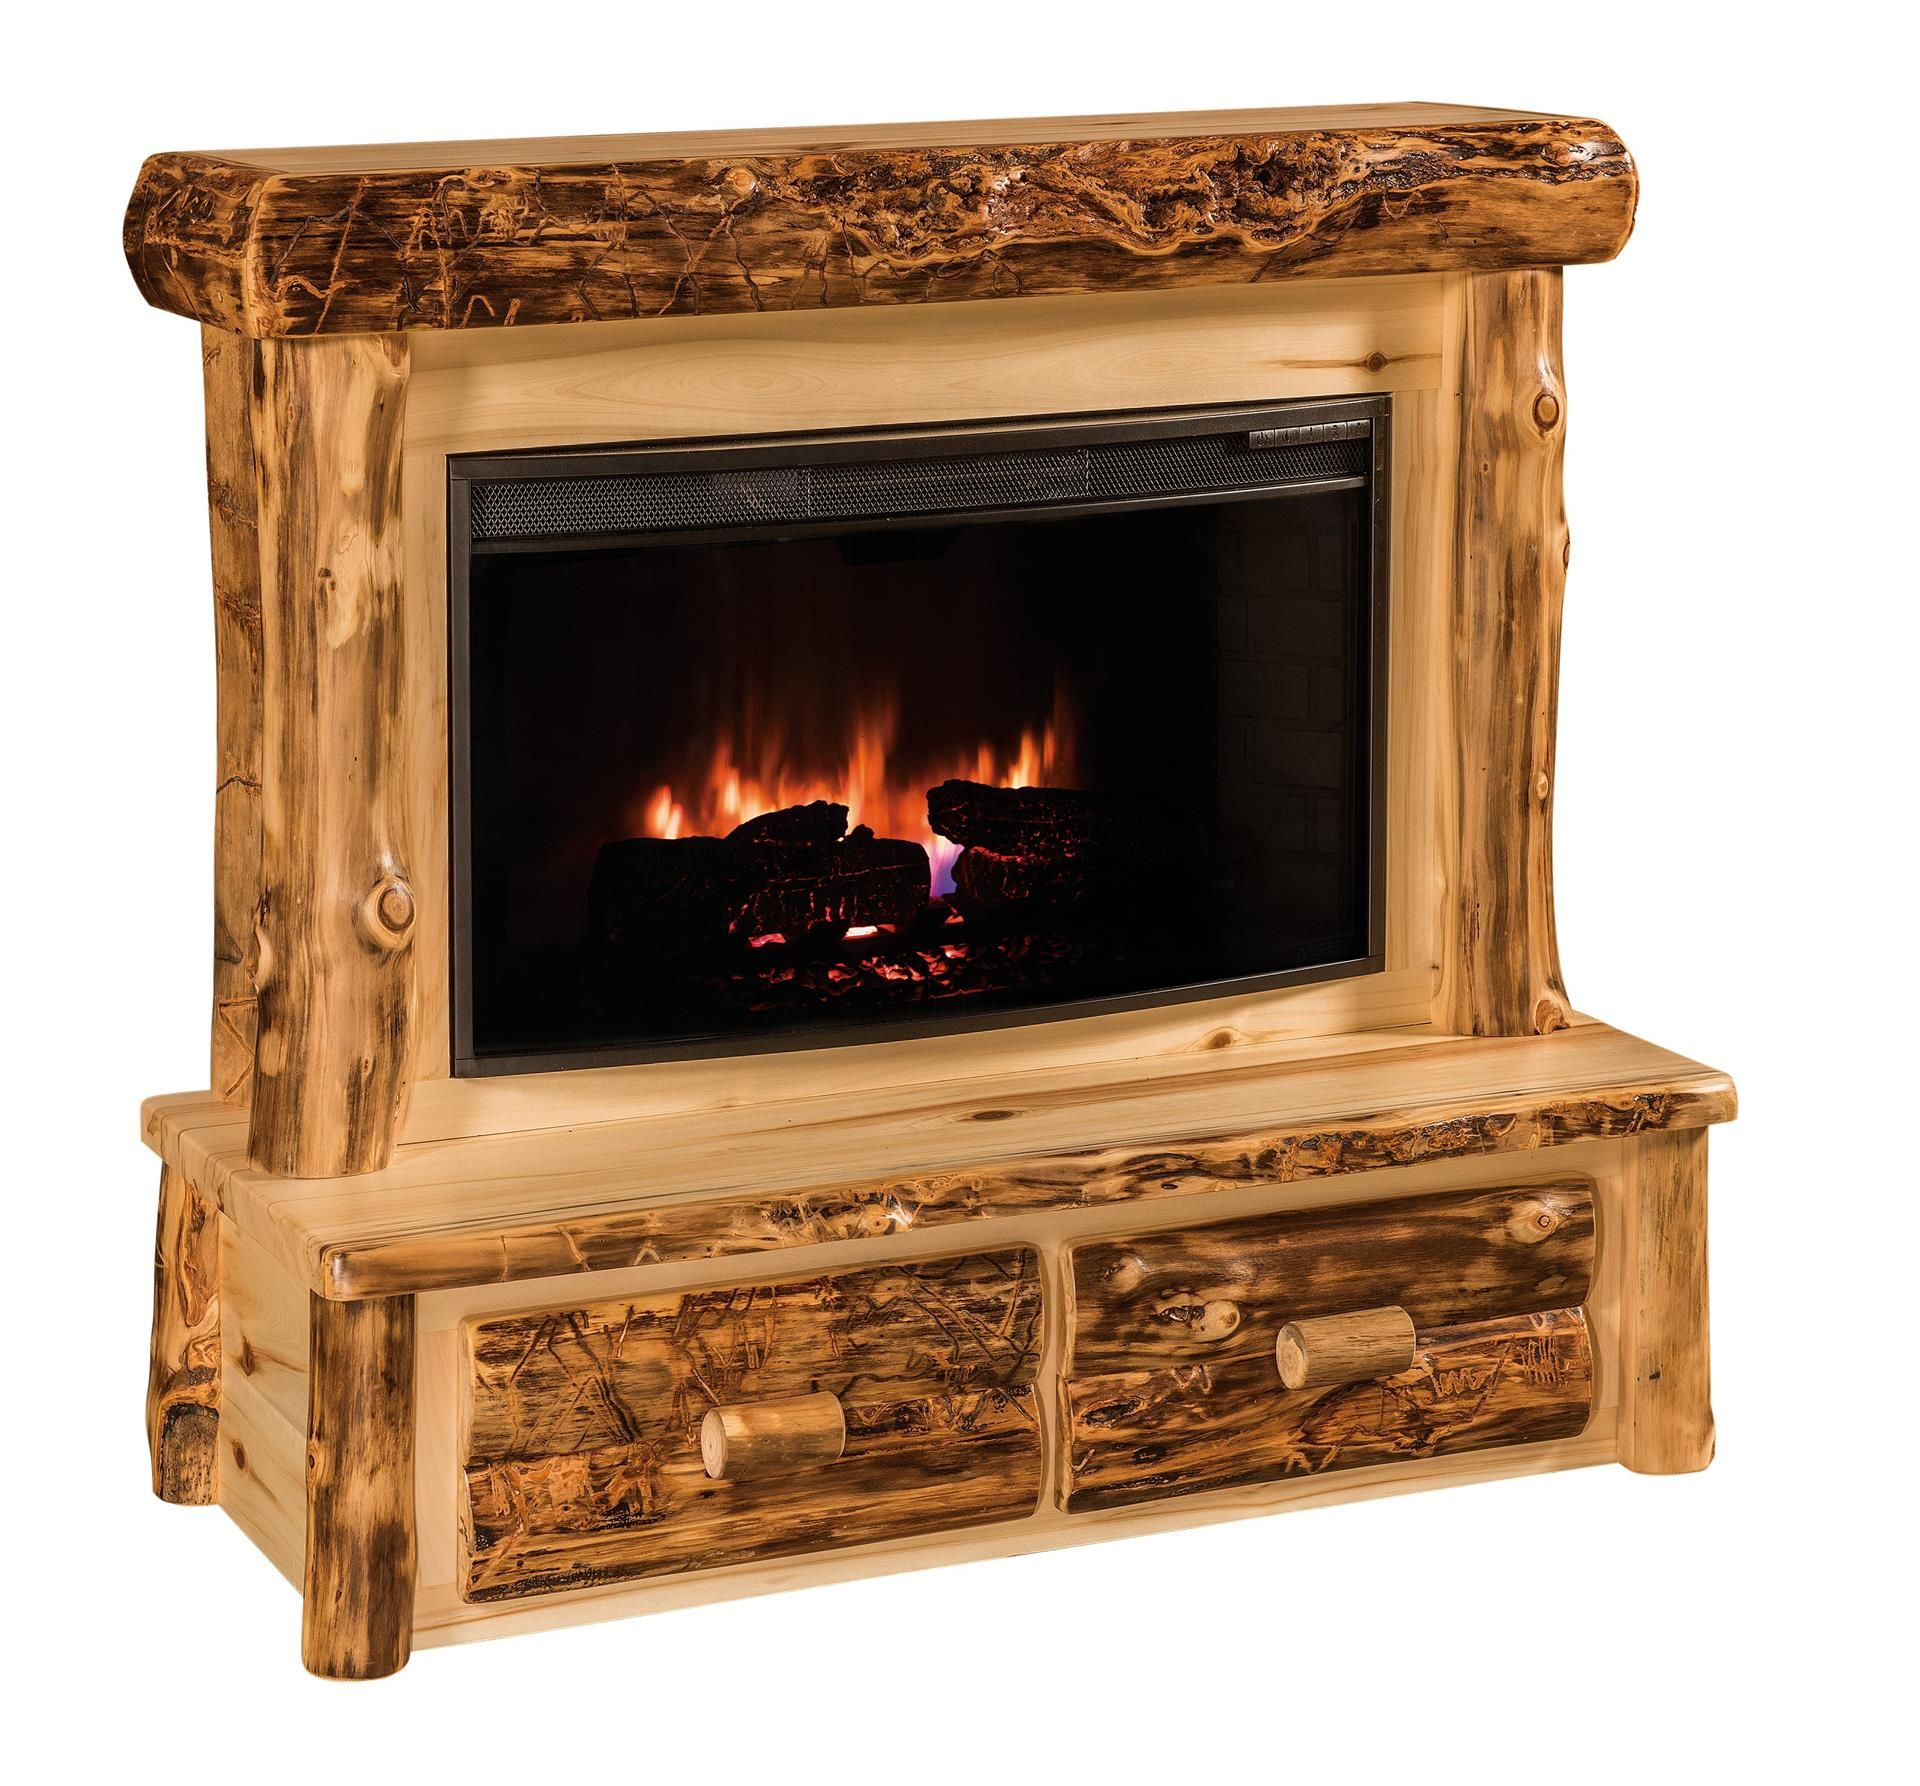 Amish Rustic Log Fireplace With Mantel And Drawers Fireplace